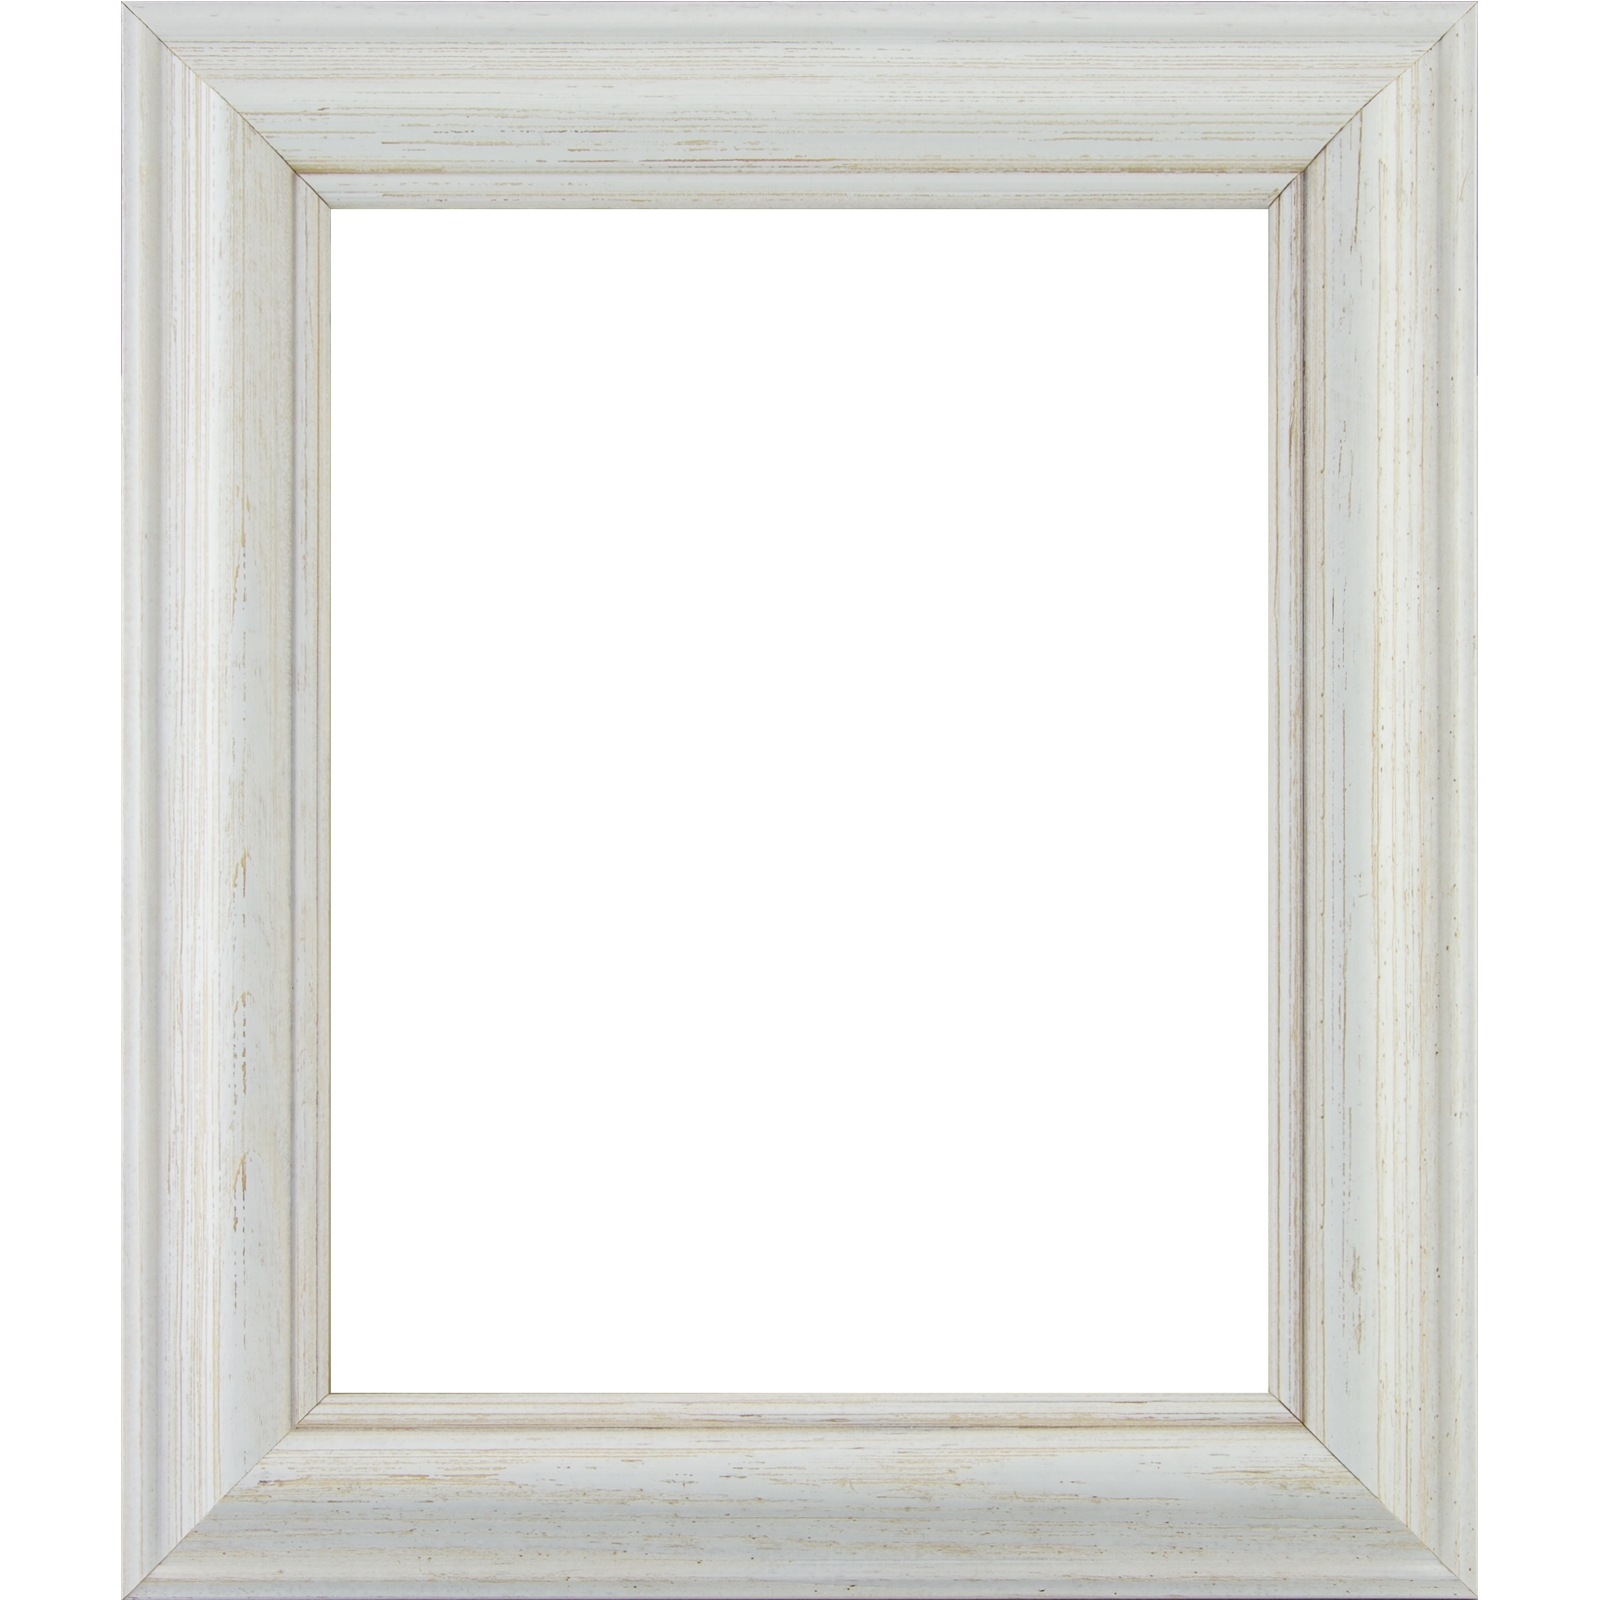 American classic weathered white pine wood picture for American classic frames